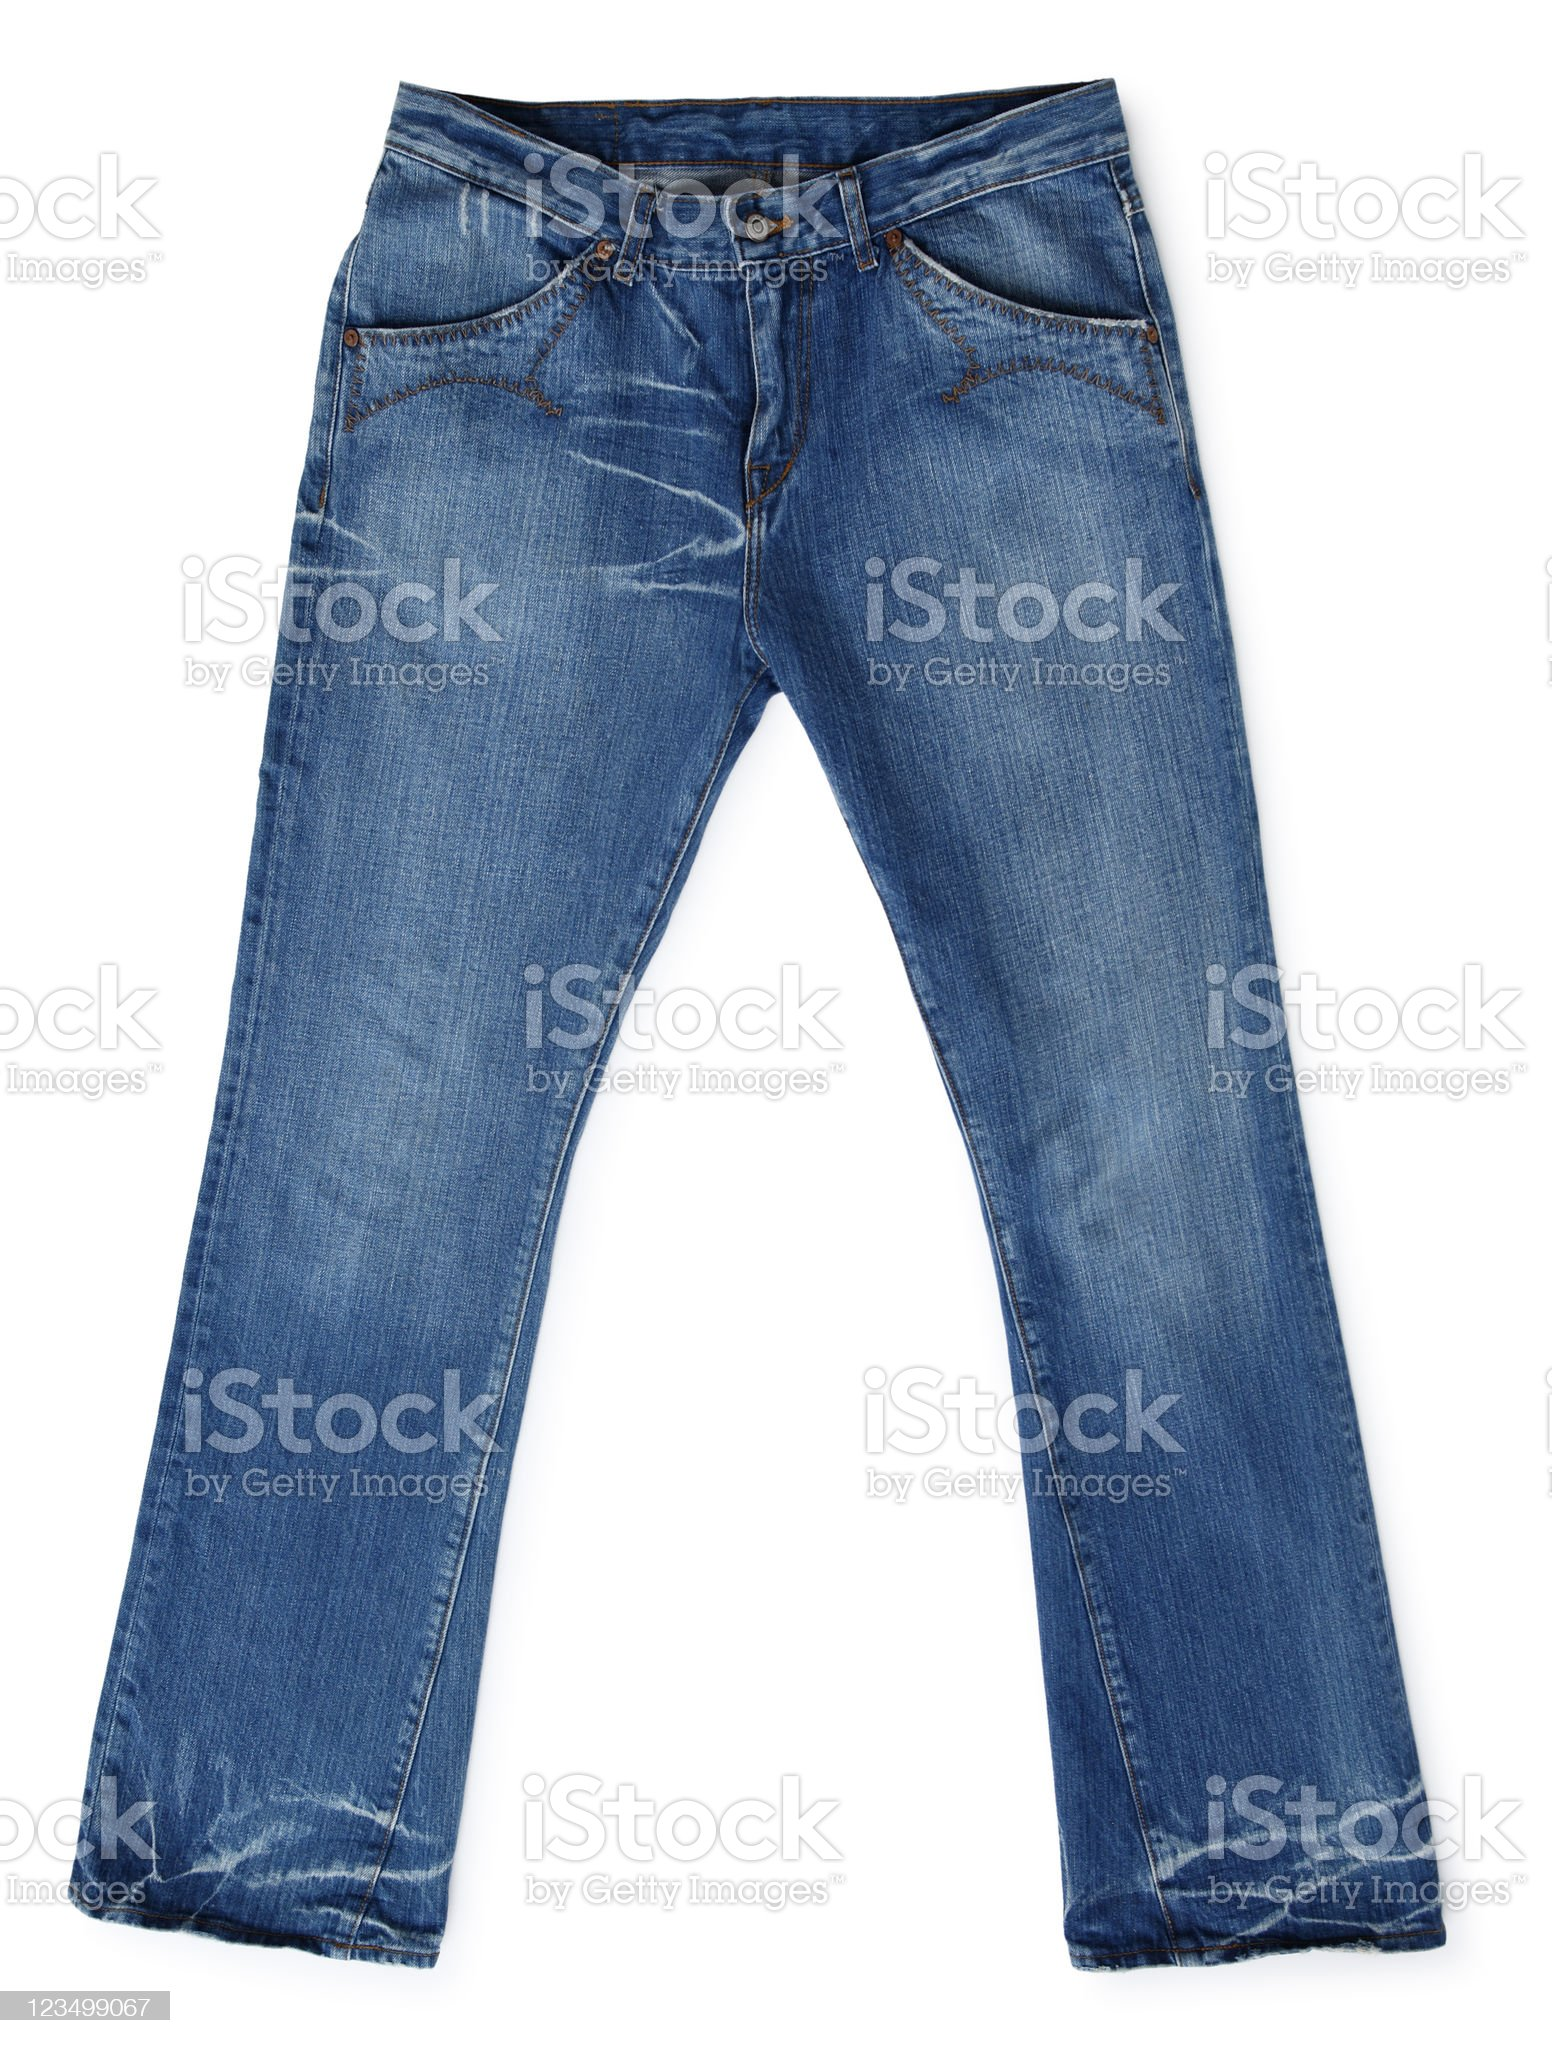 Pair of Blue Jeans Isolated on white royalty-free stock photo